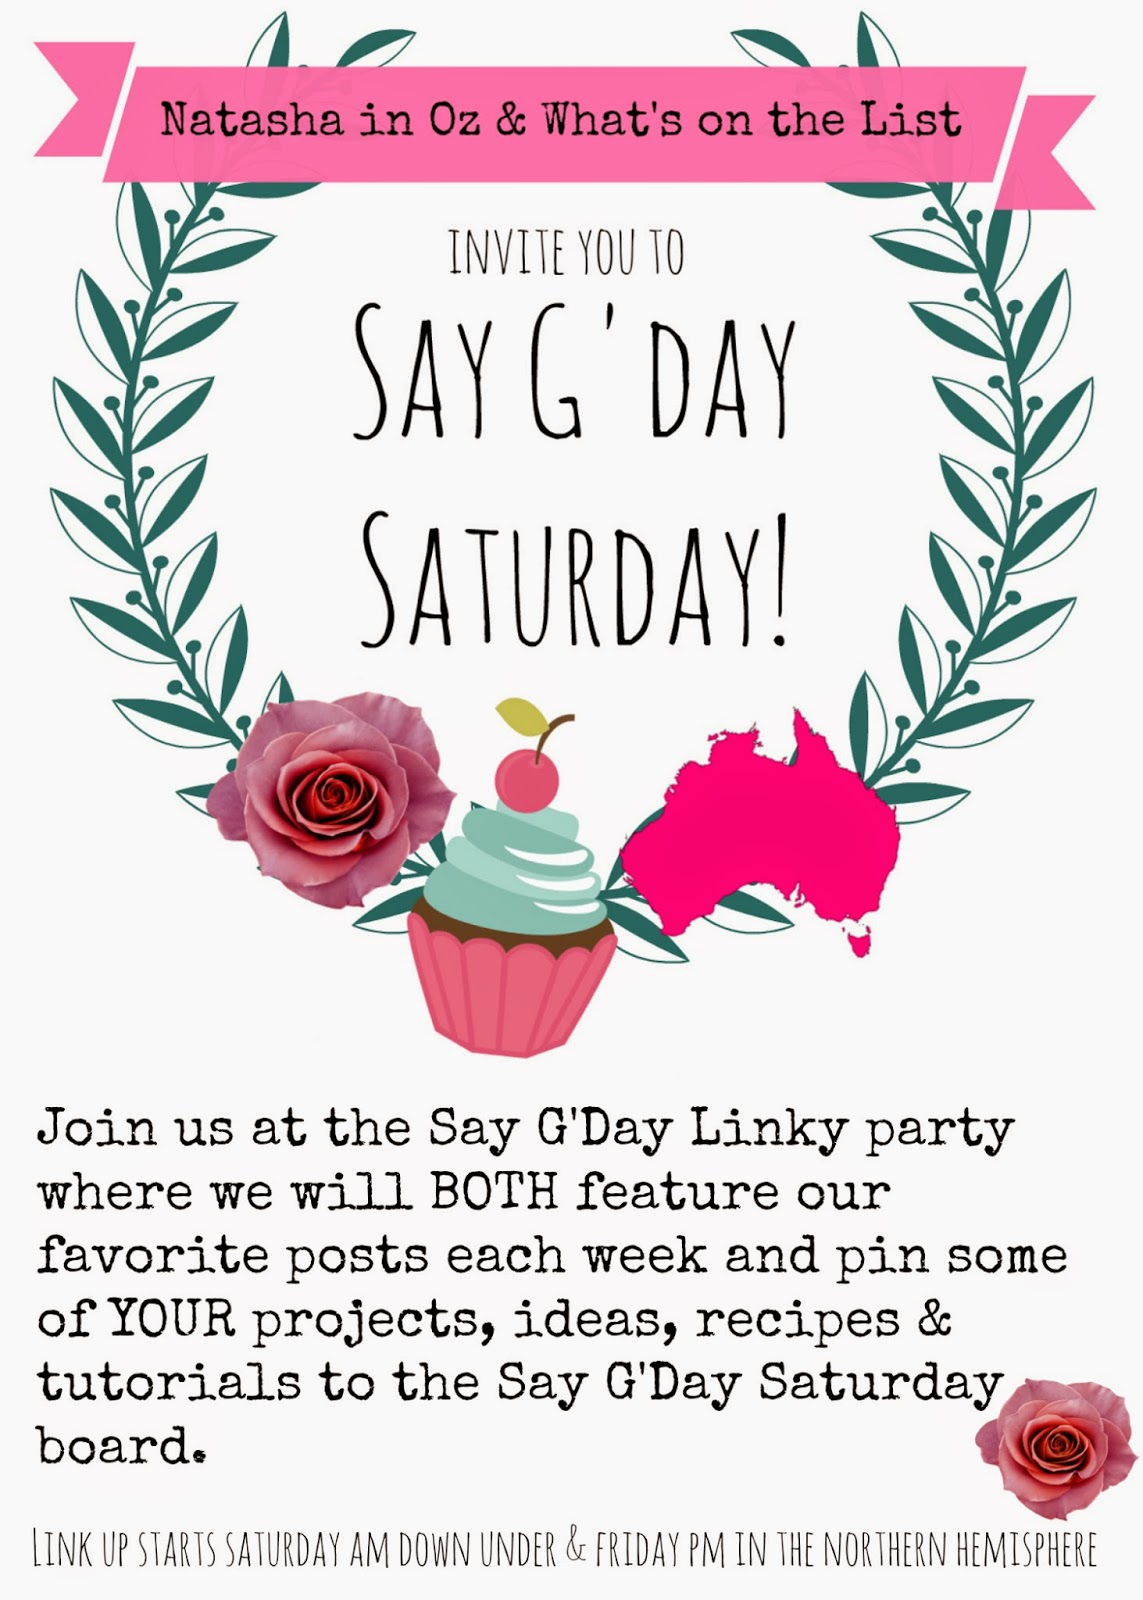 Say G'Day Saturday Linky Party @ www.natashainoz.com